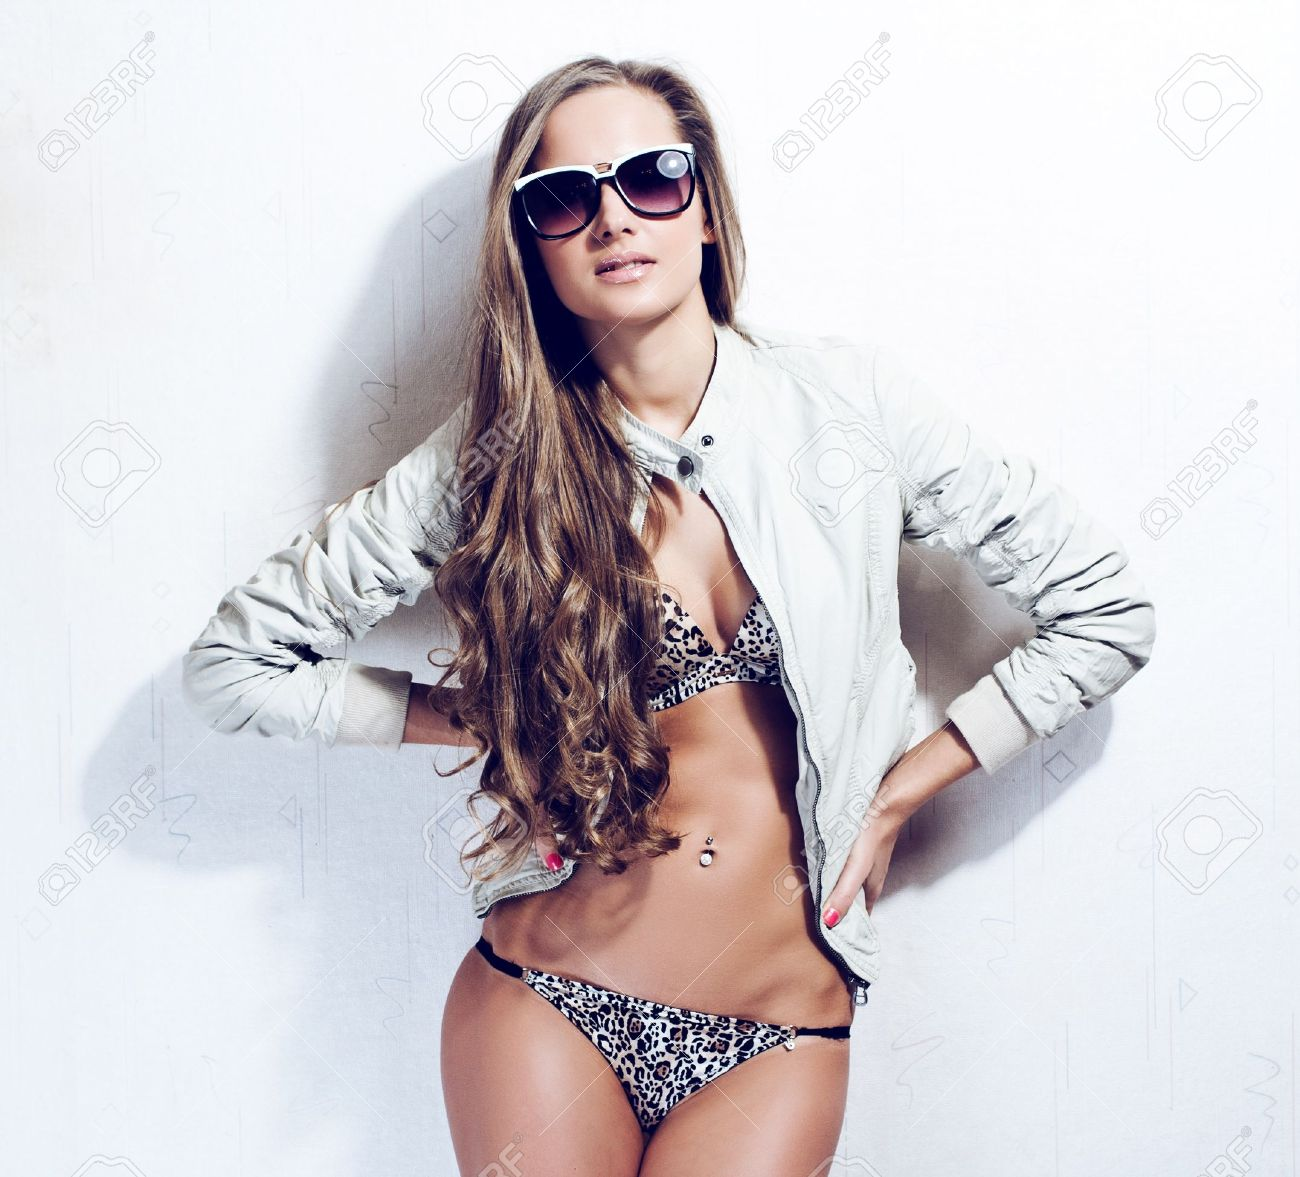 fashion model with long curly hair , posing at studio Stock Photo - 16166108